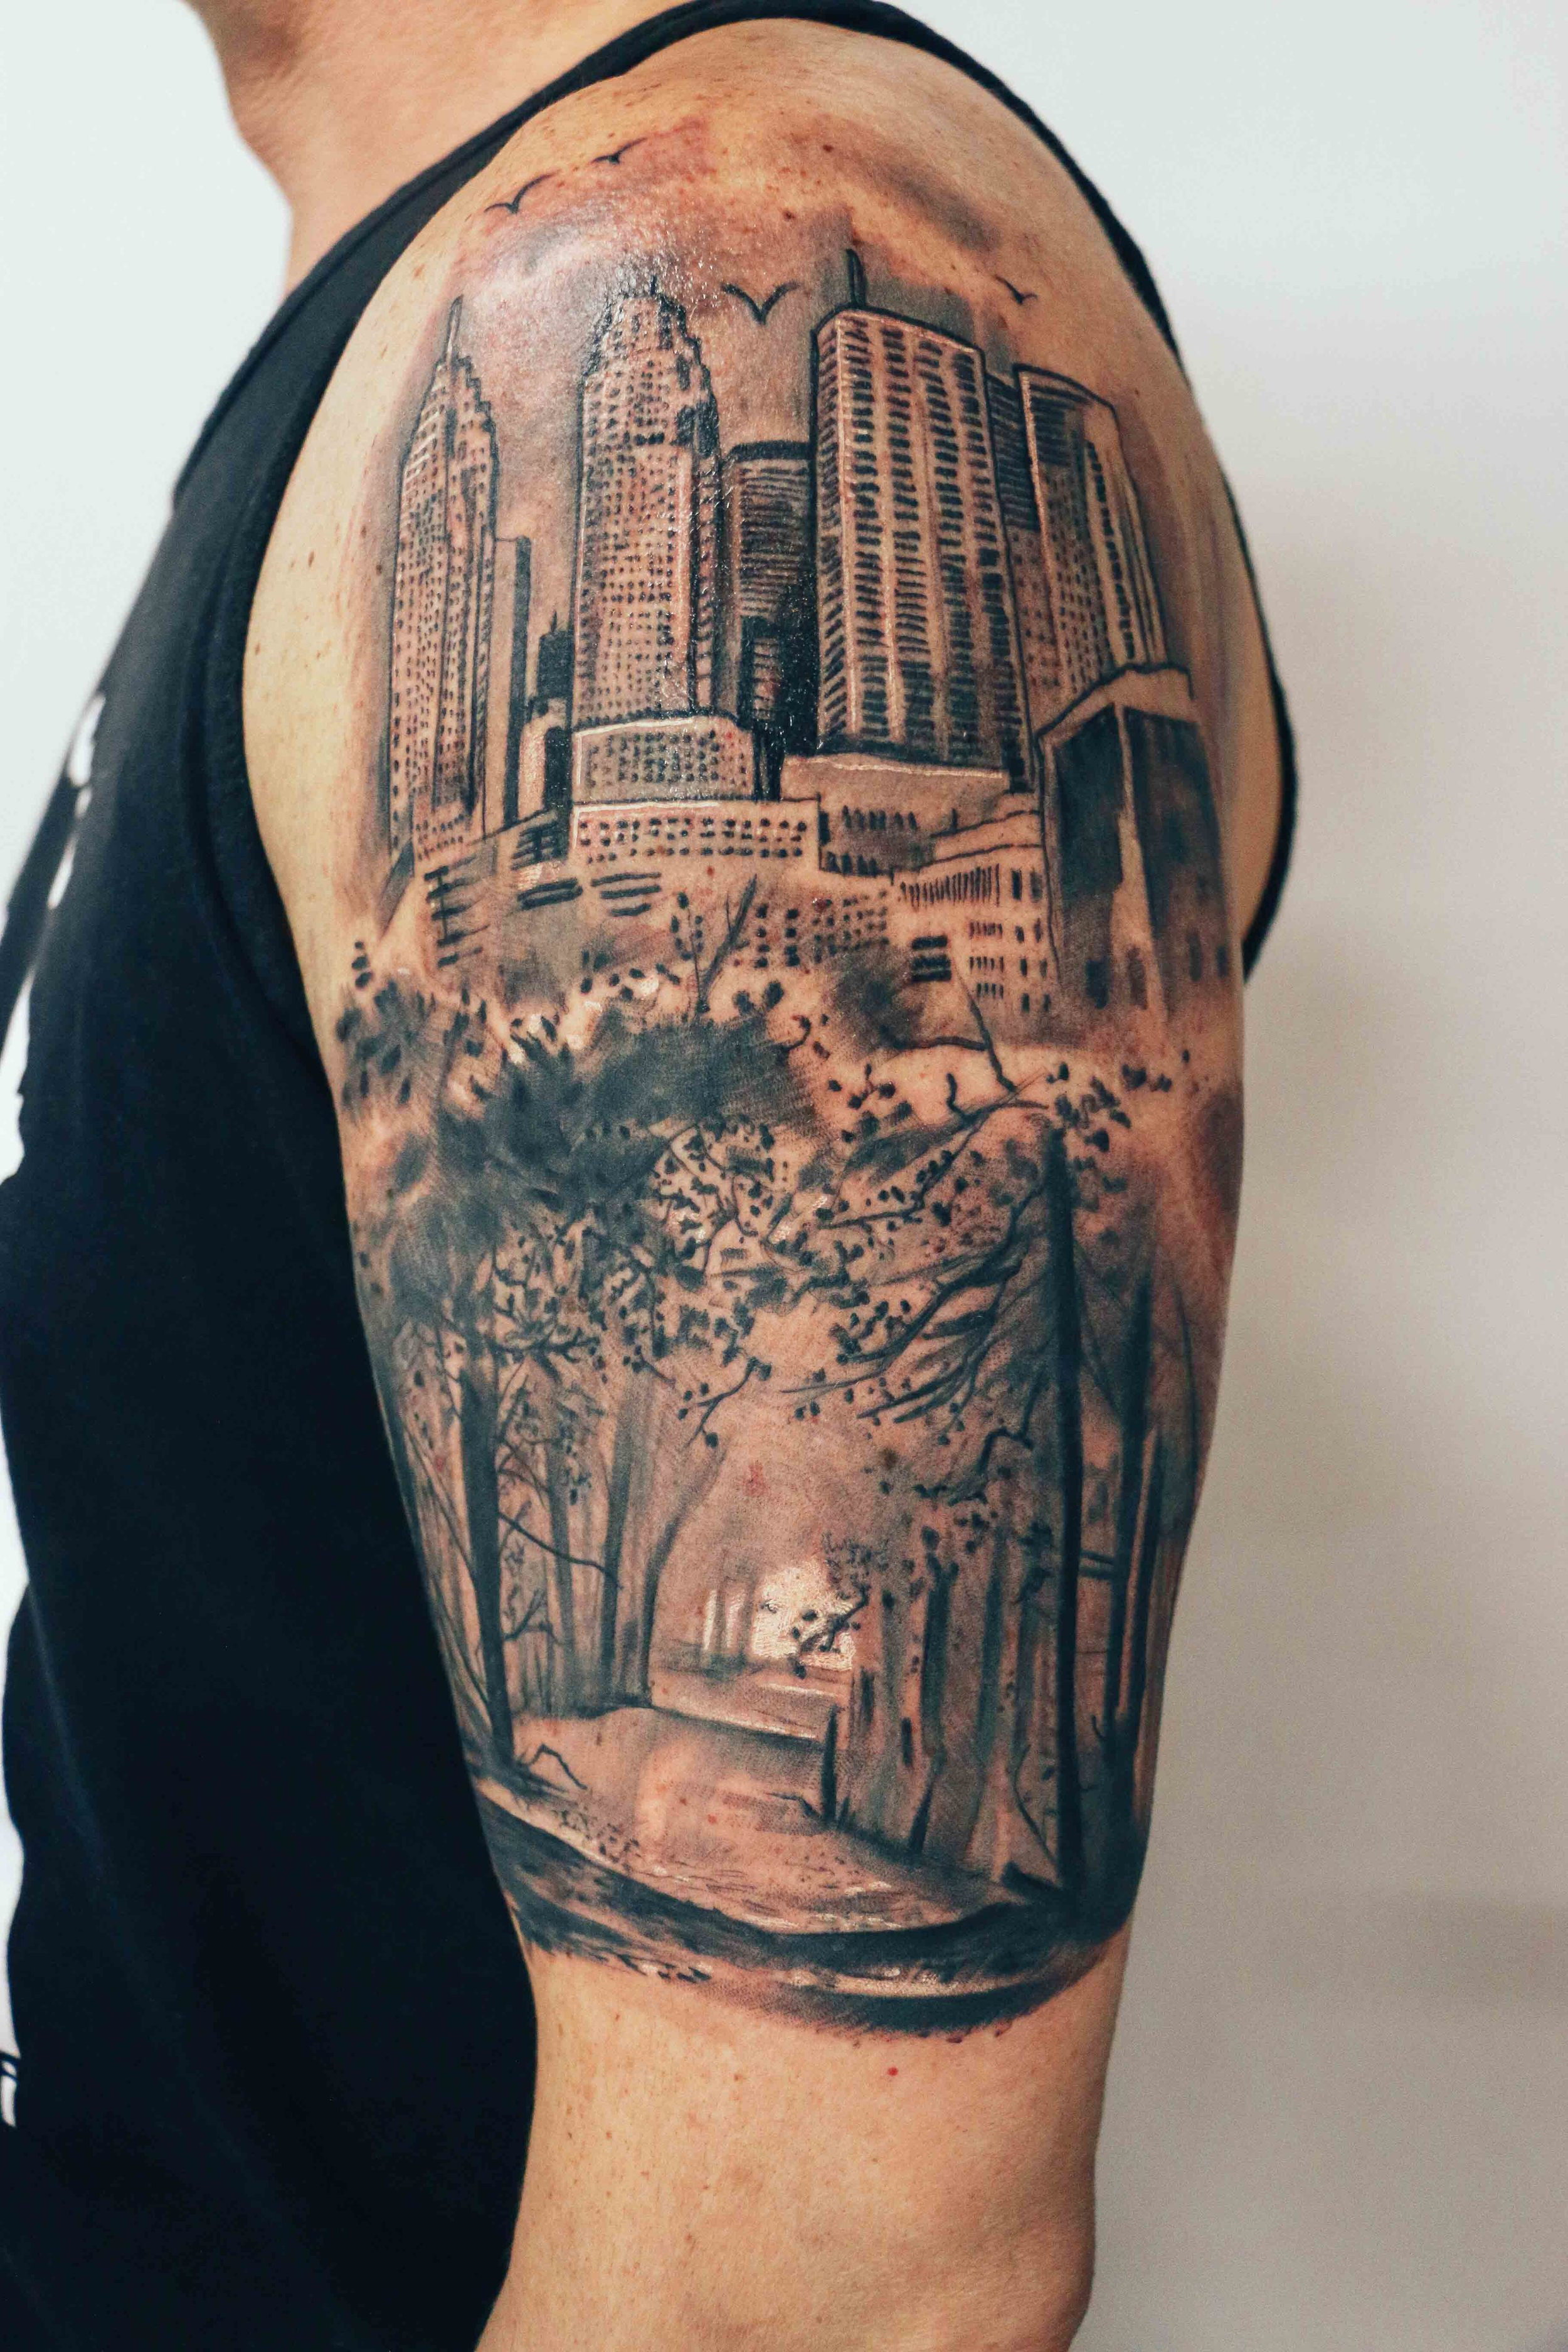 fyink-tattoos-aprshoplife-54.jpg